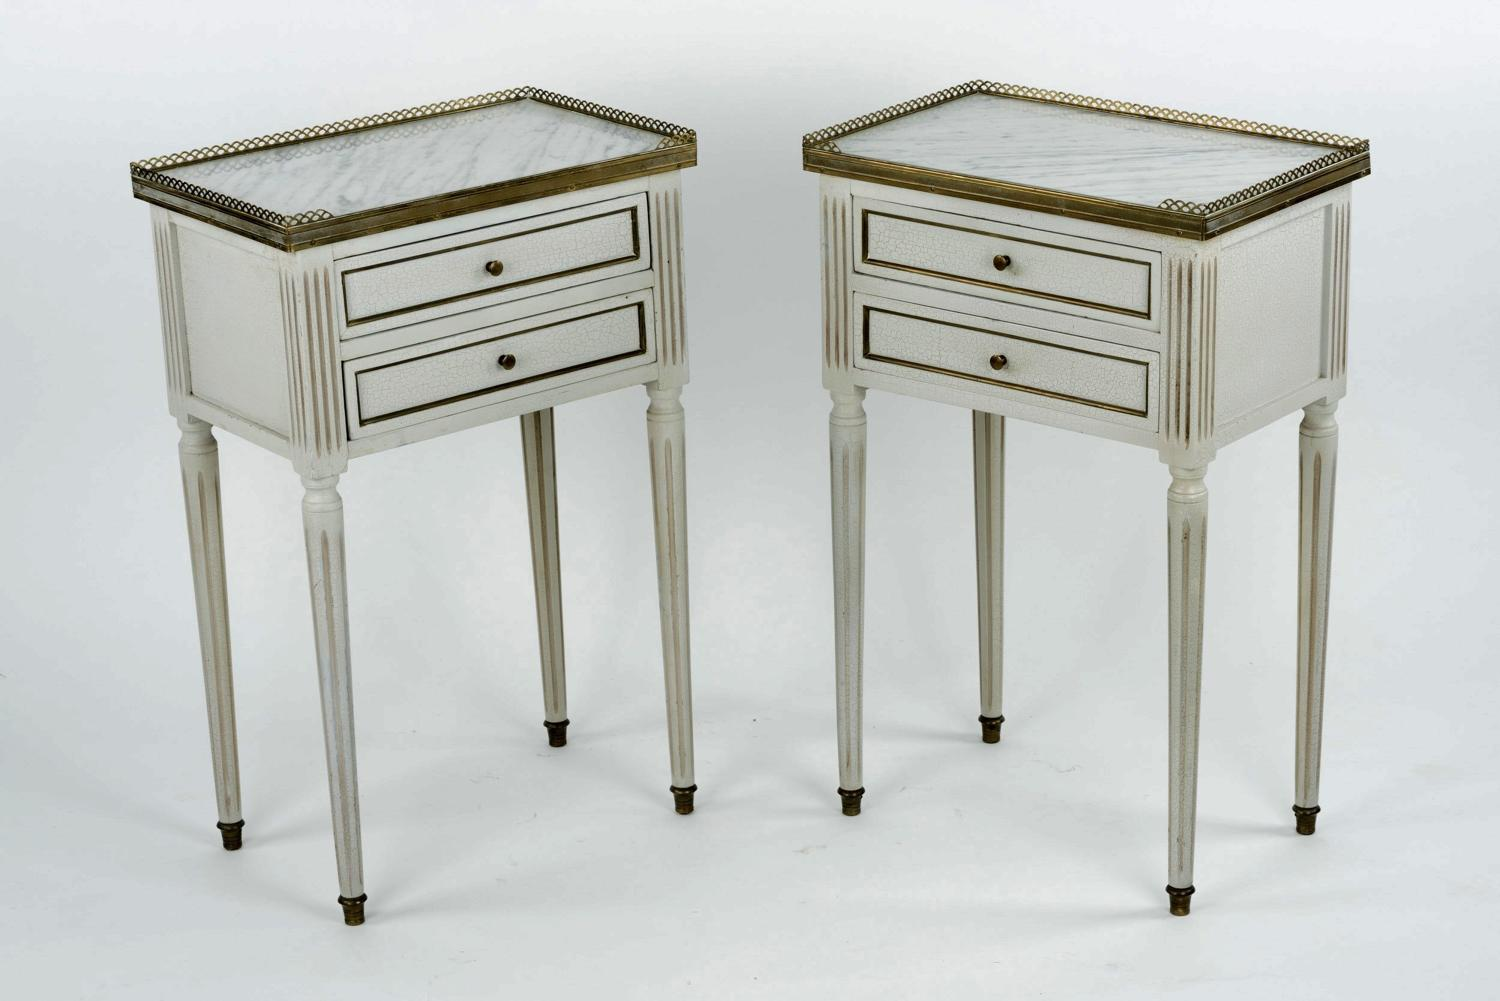 Pair of bedside tables with marble tops